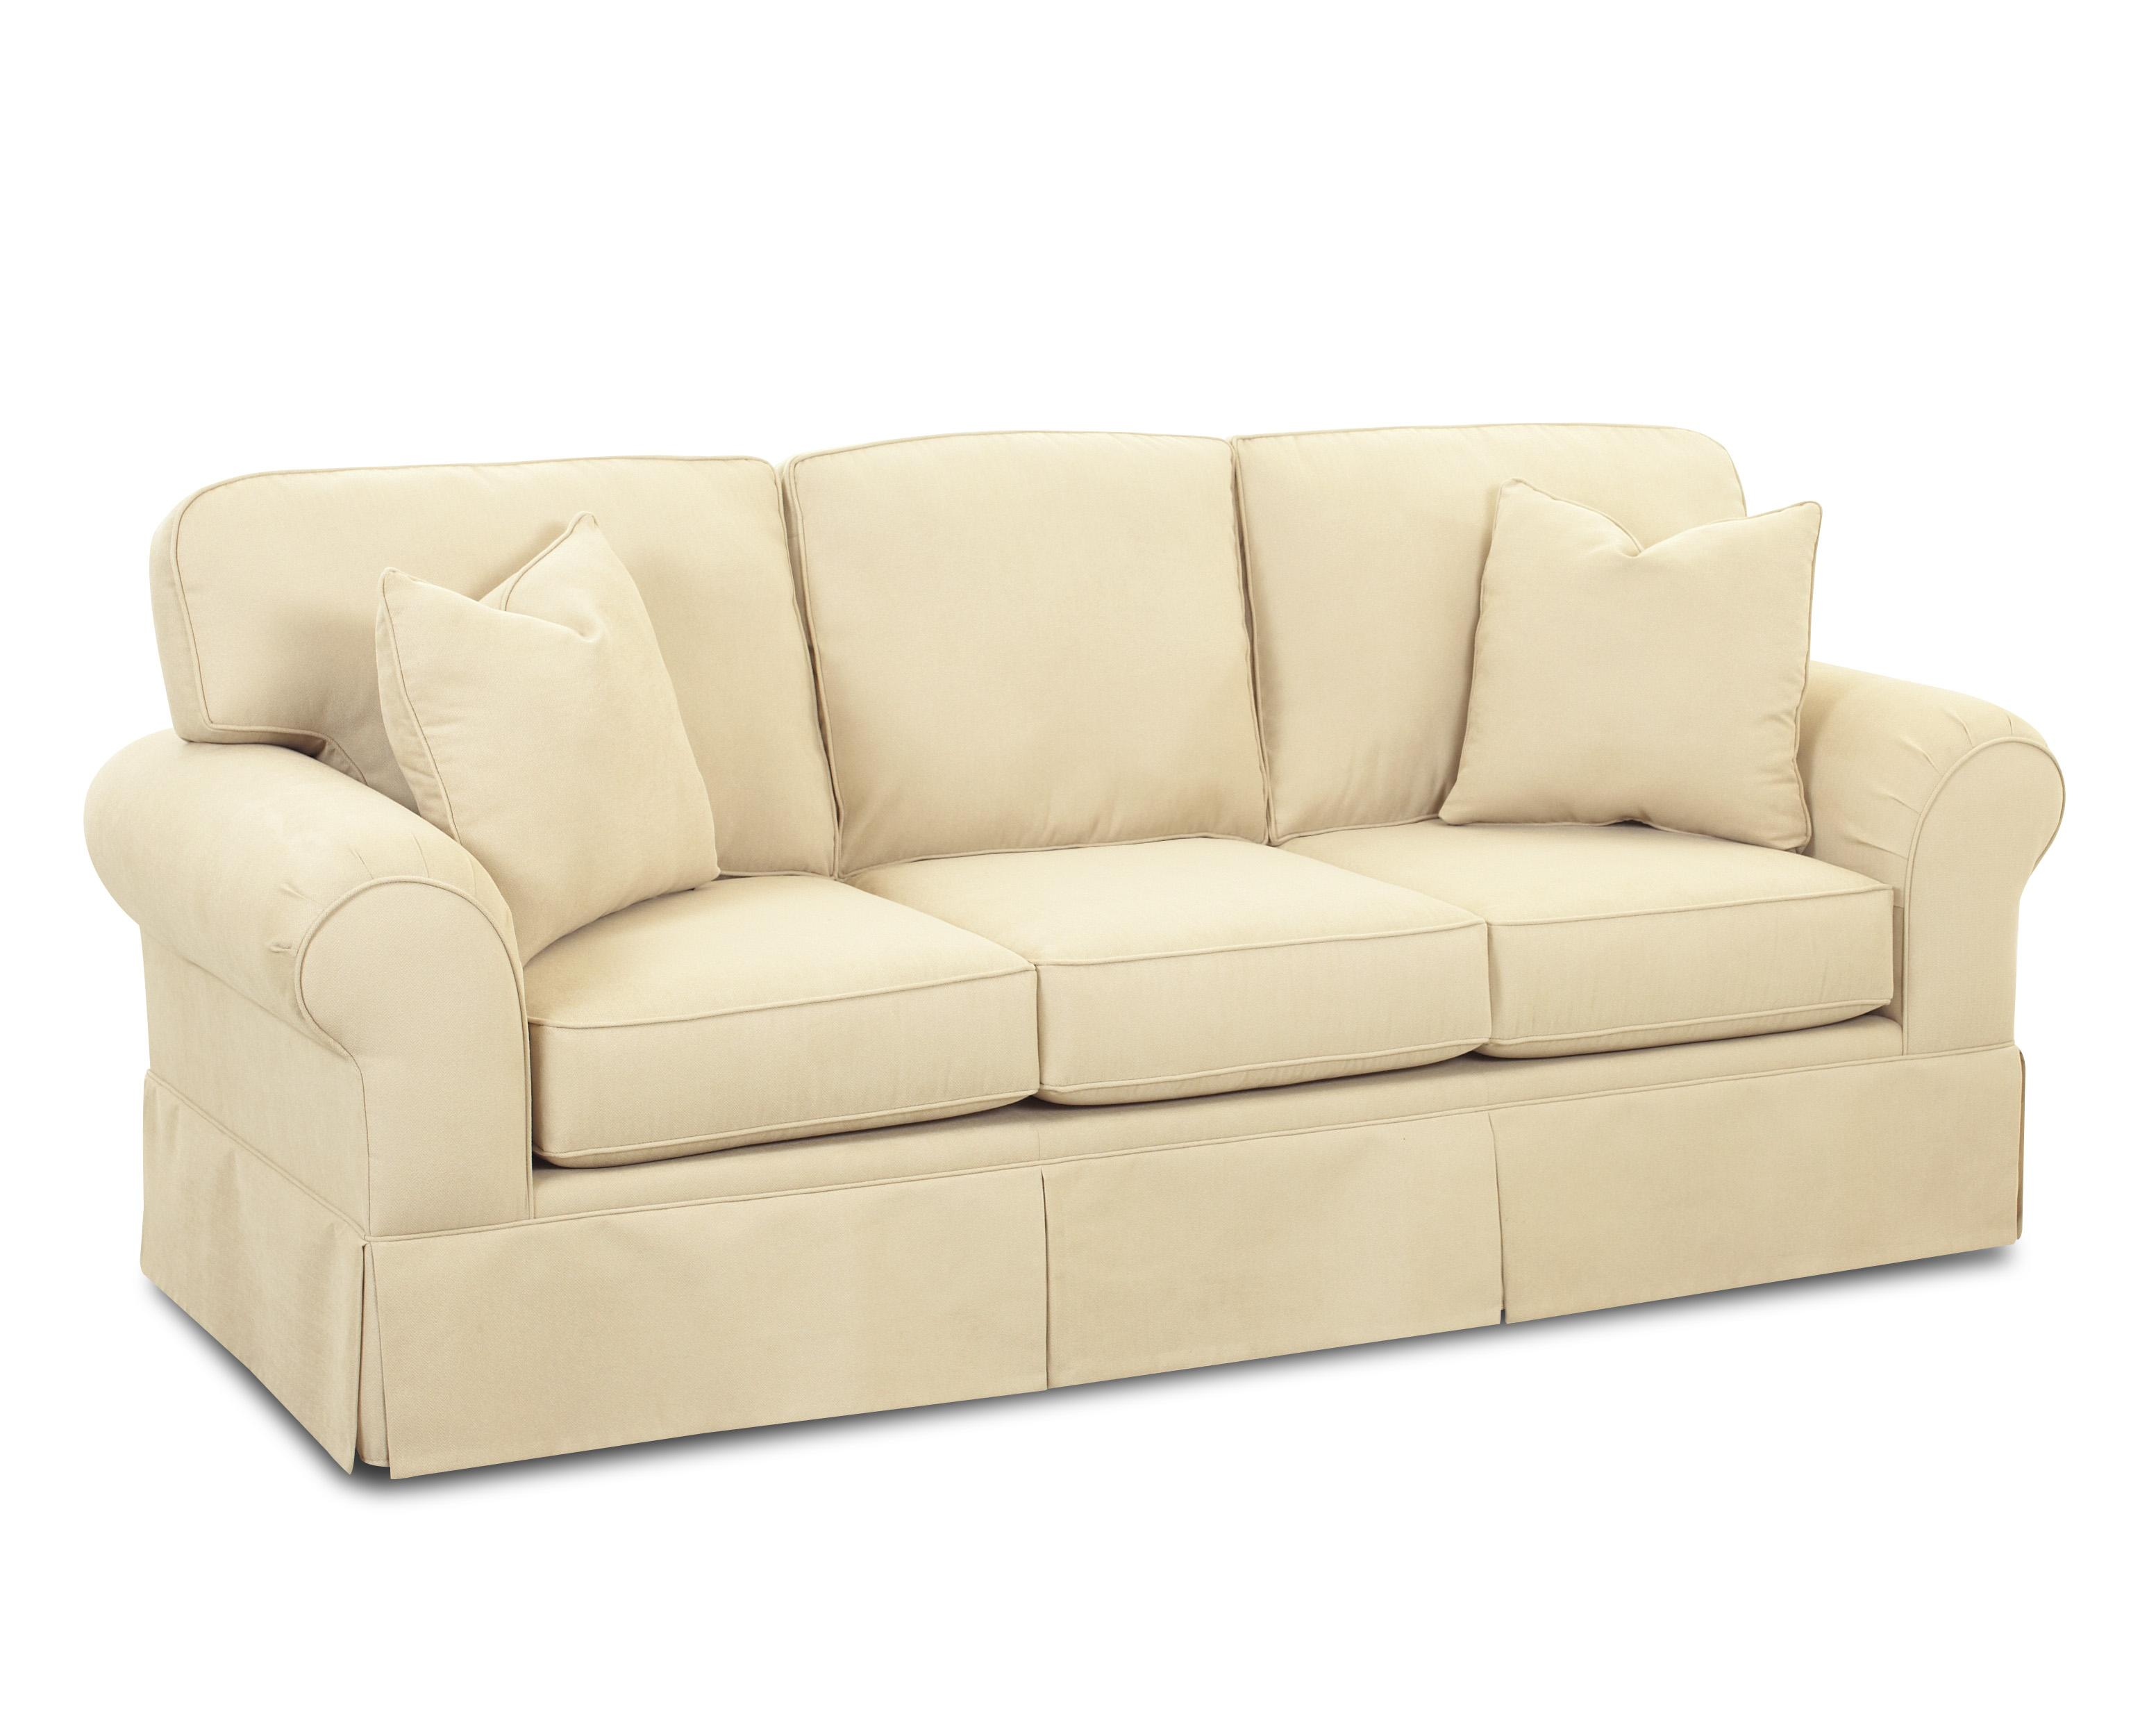 Casual Skirted Sofa By Klaussner Wolf And Gardiner Wolf Furniture